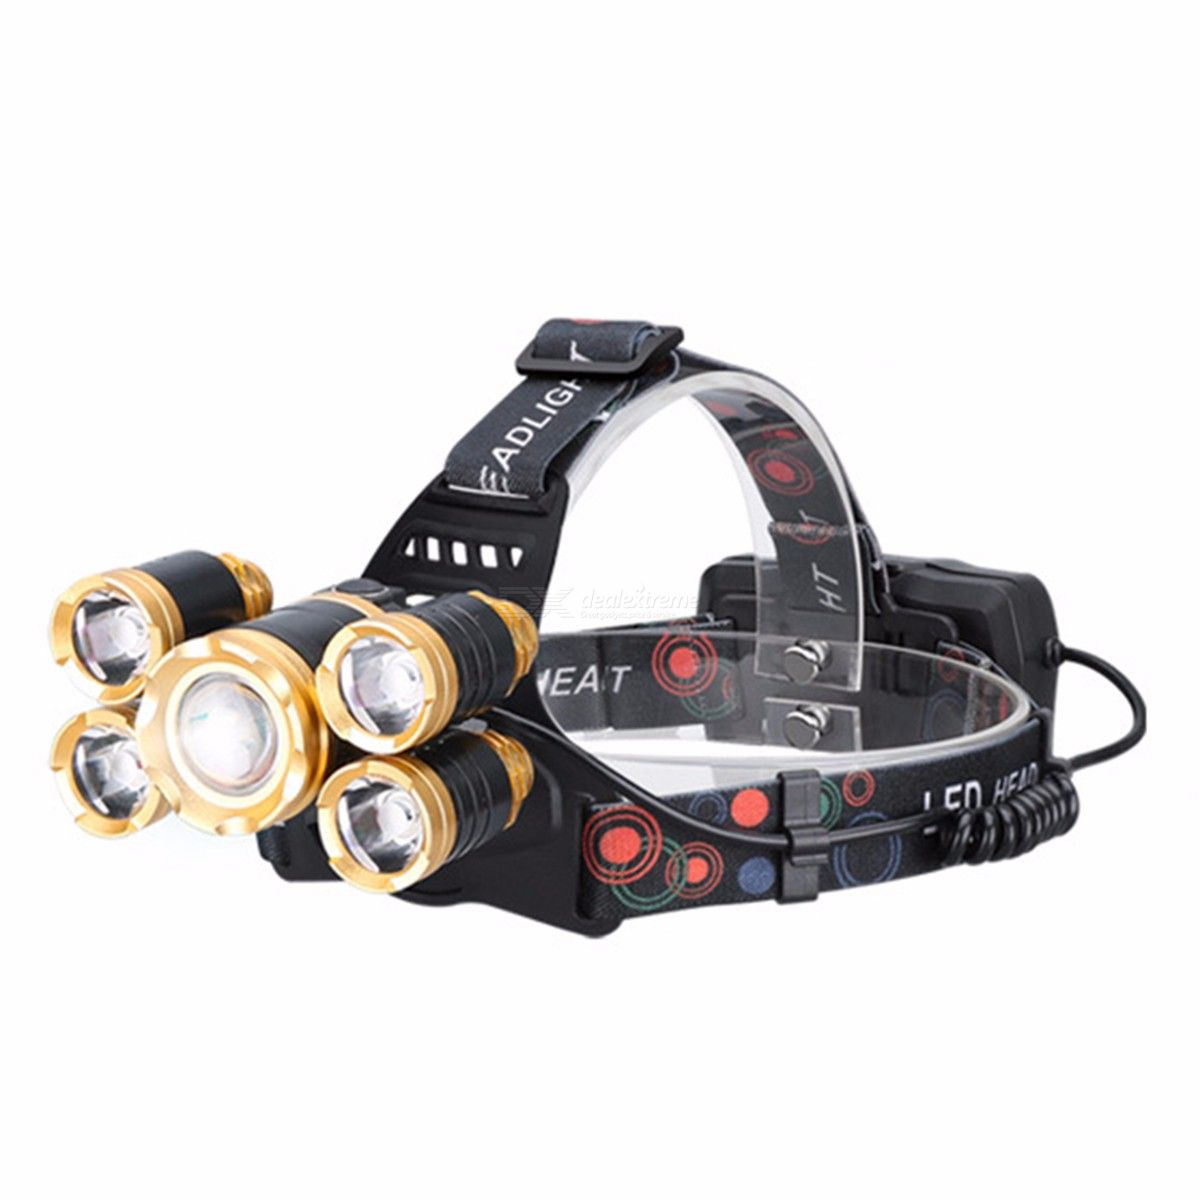 T6 USB Rechargeable LED Headlamps Waterproof Strong Light Sensor 5 Heads Fishing Lamp With Charger